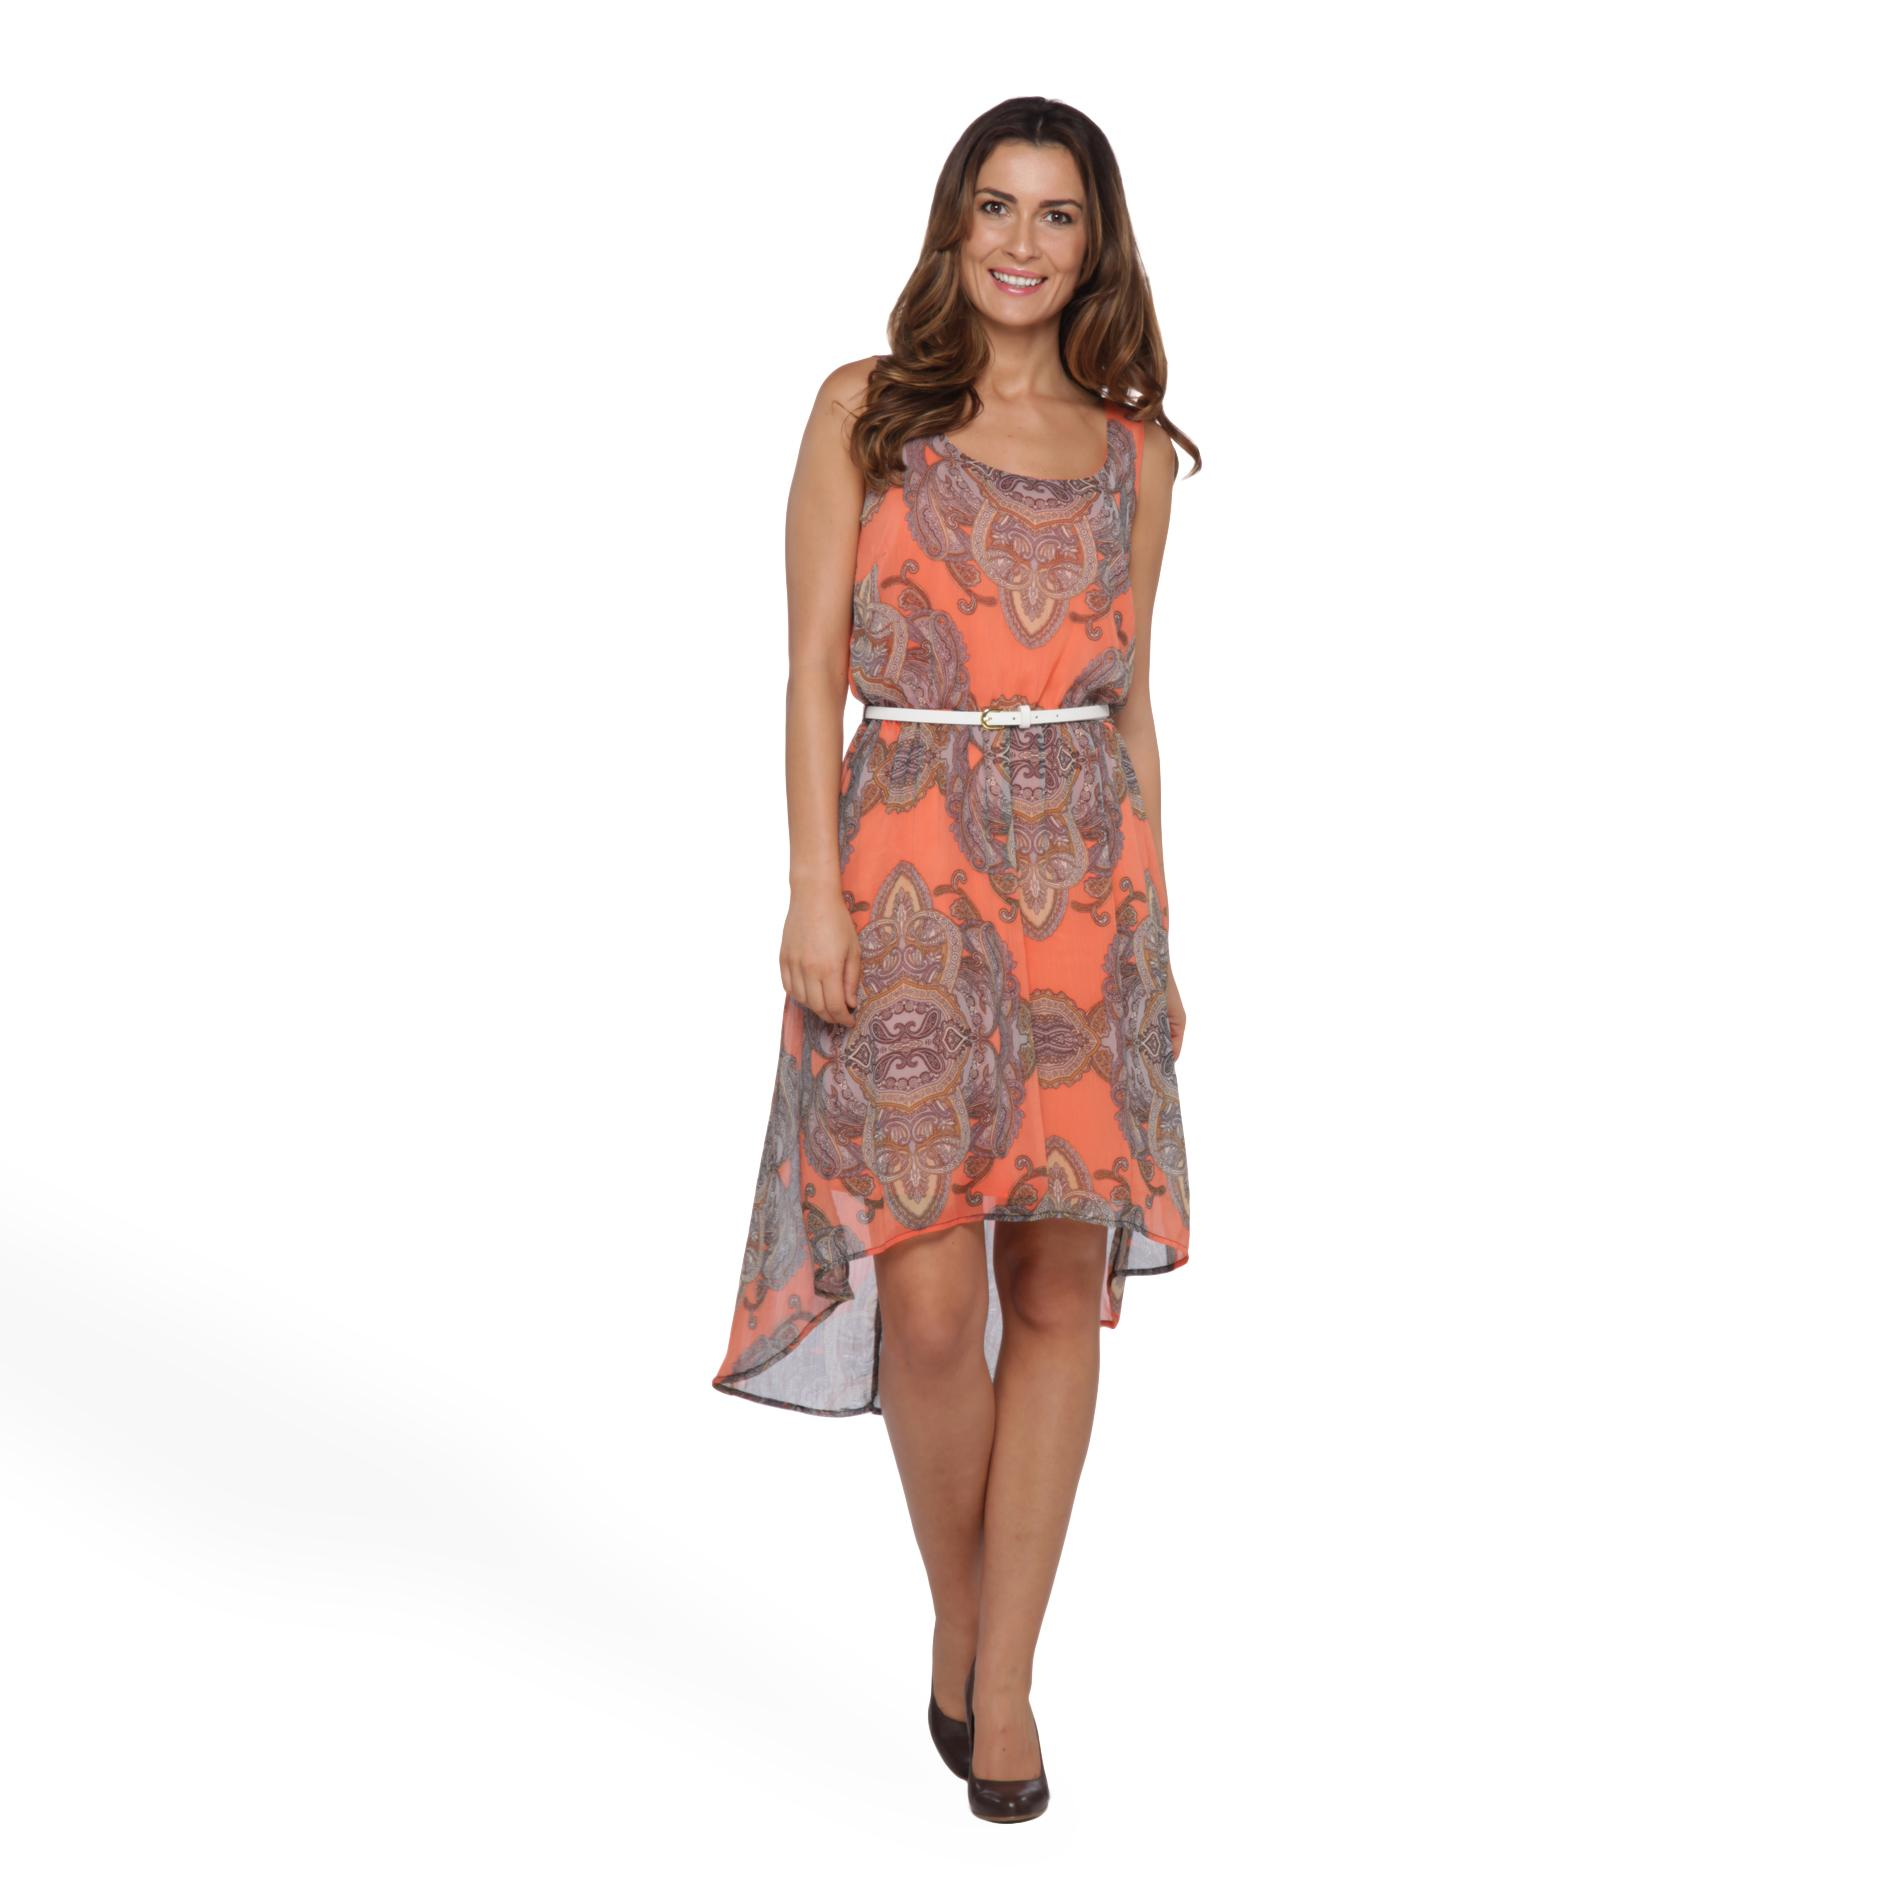 Halo Women's High-Low Dress & Belt - Medallion at Sears.com